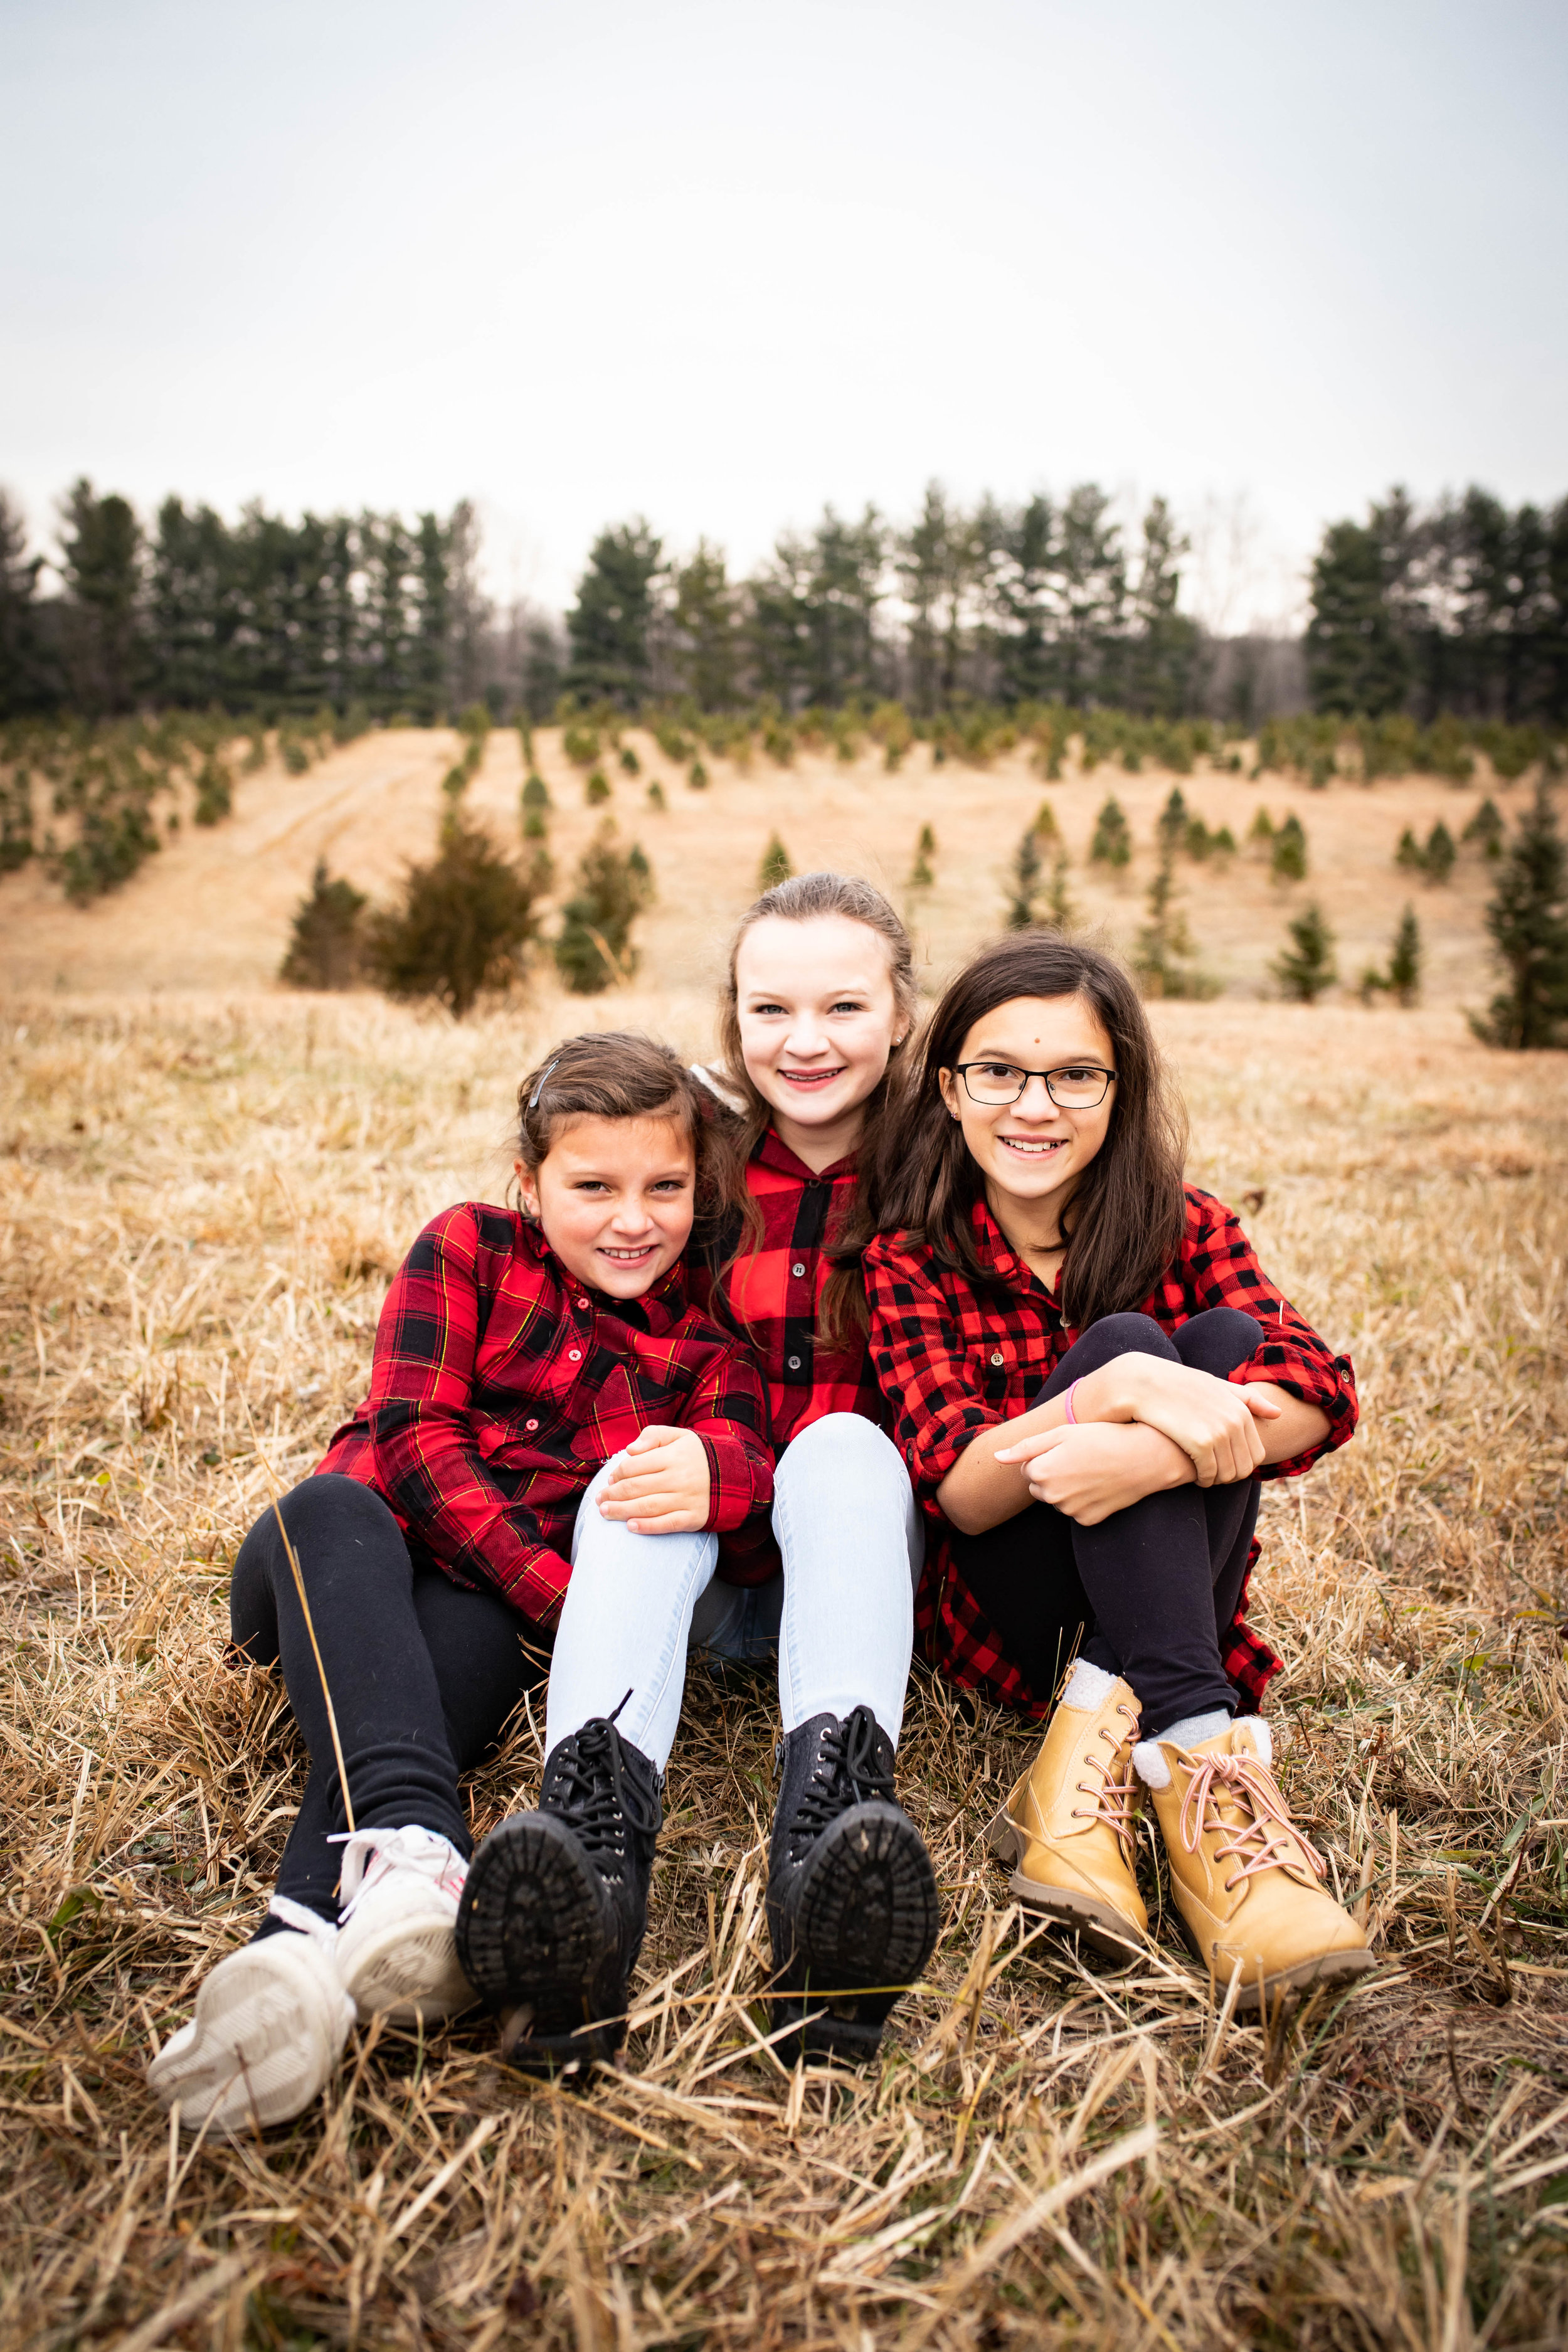 Mini-Session Portrait Package - + 20 minute photography session+ Typically occurs one day per season for all four seasons+ Location will be in Bloomington, Indiana+ Release of images using Dropbox+At least 15 images guaranteedCost: $60Additional:+ Flash Drive : $10